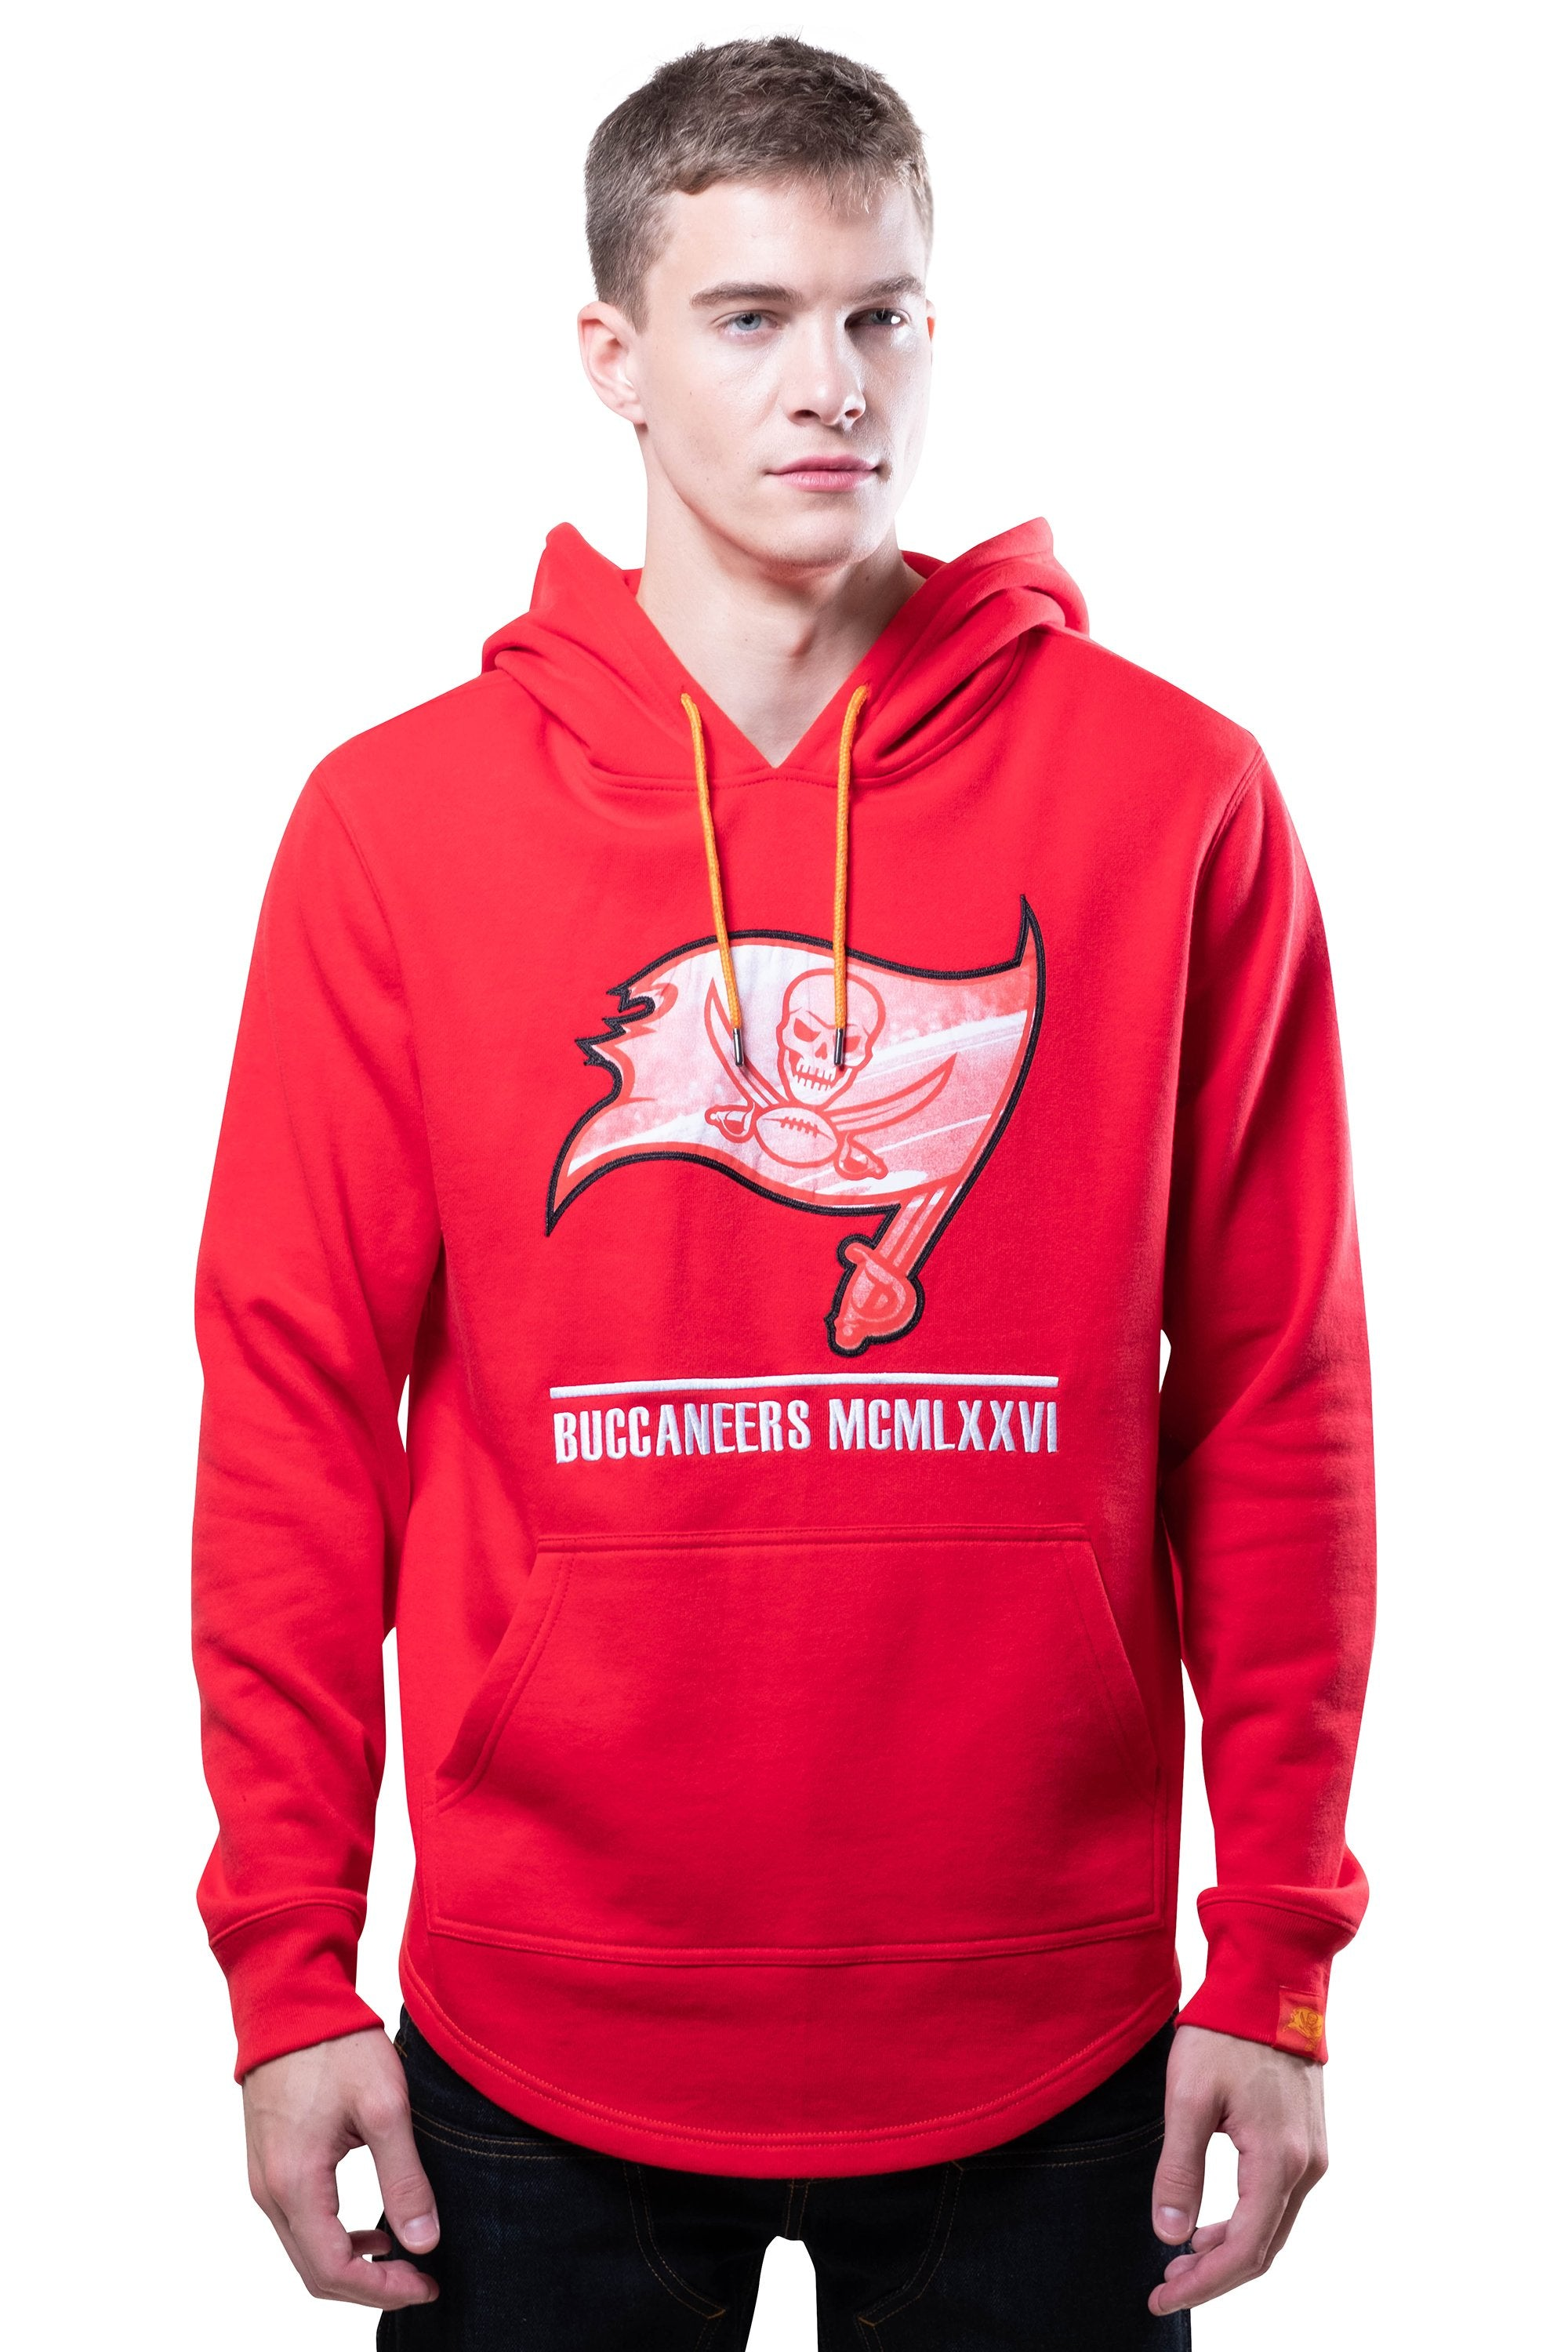 NFL Tampa Bay Buccaneers Men's Embroidered Hoodie|Tampa Bay Buccaneers